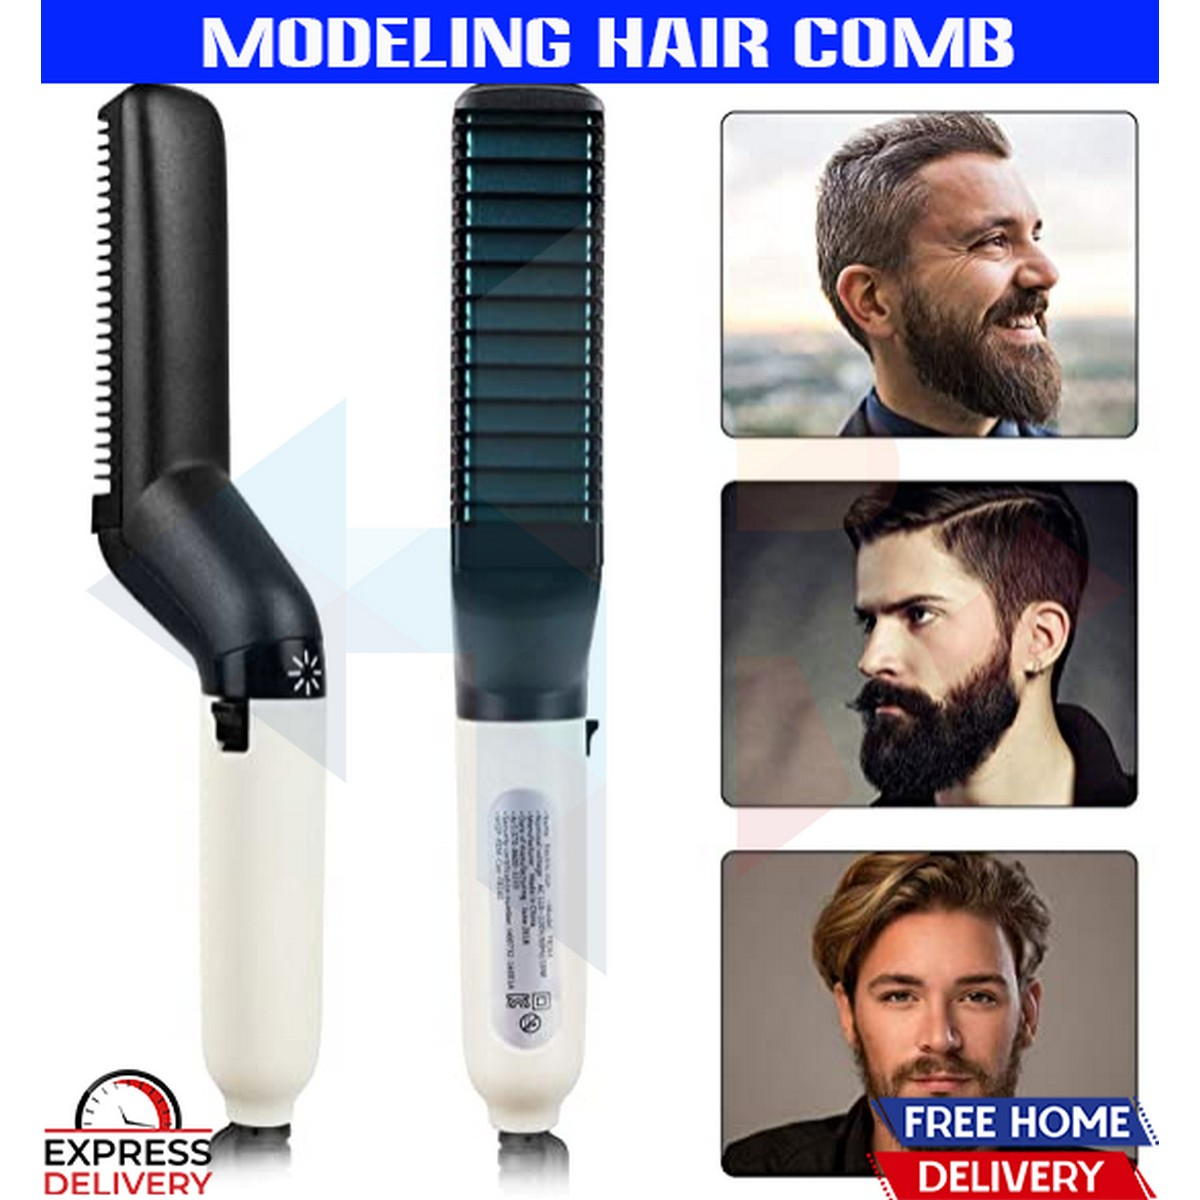 Beard Straightener & Hair Modelling Comb Multifunctional Iron Ionic Modelling Comb Heated Beard Brush for Men & Women Fast Heated Anti-Scald Quick Styling